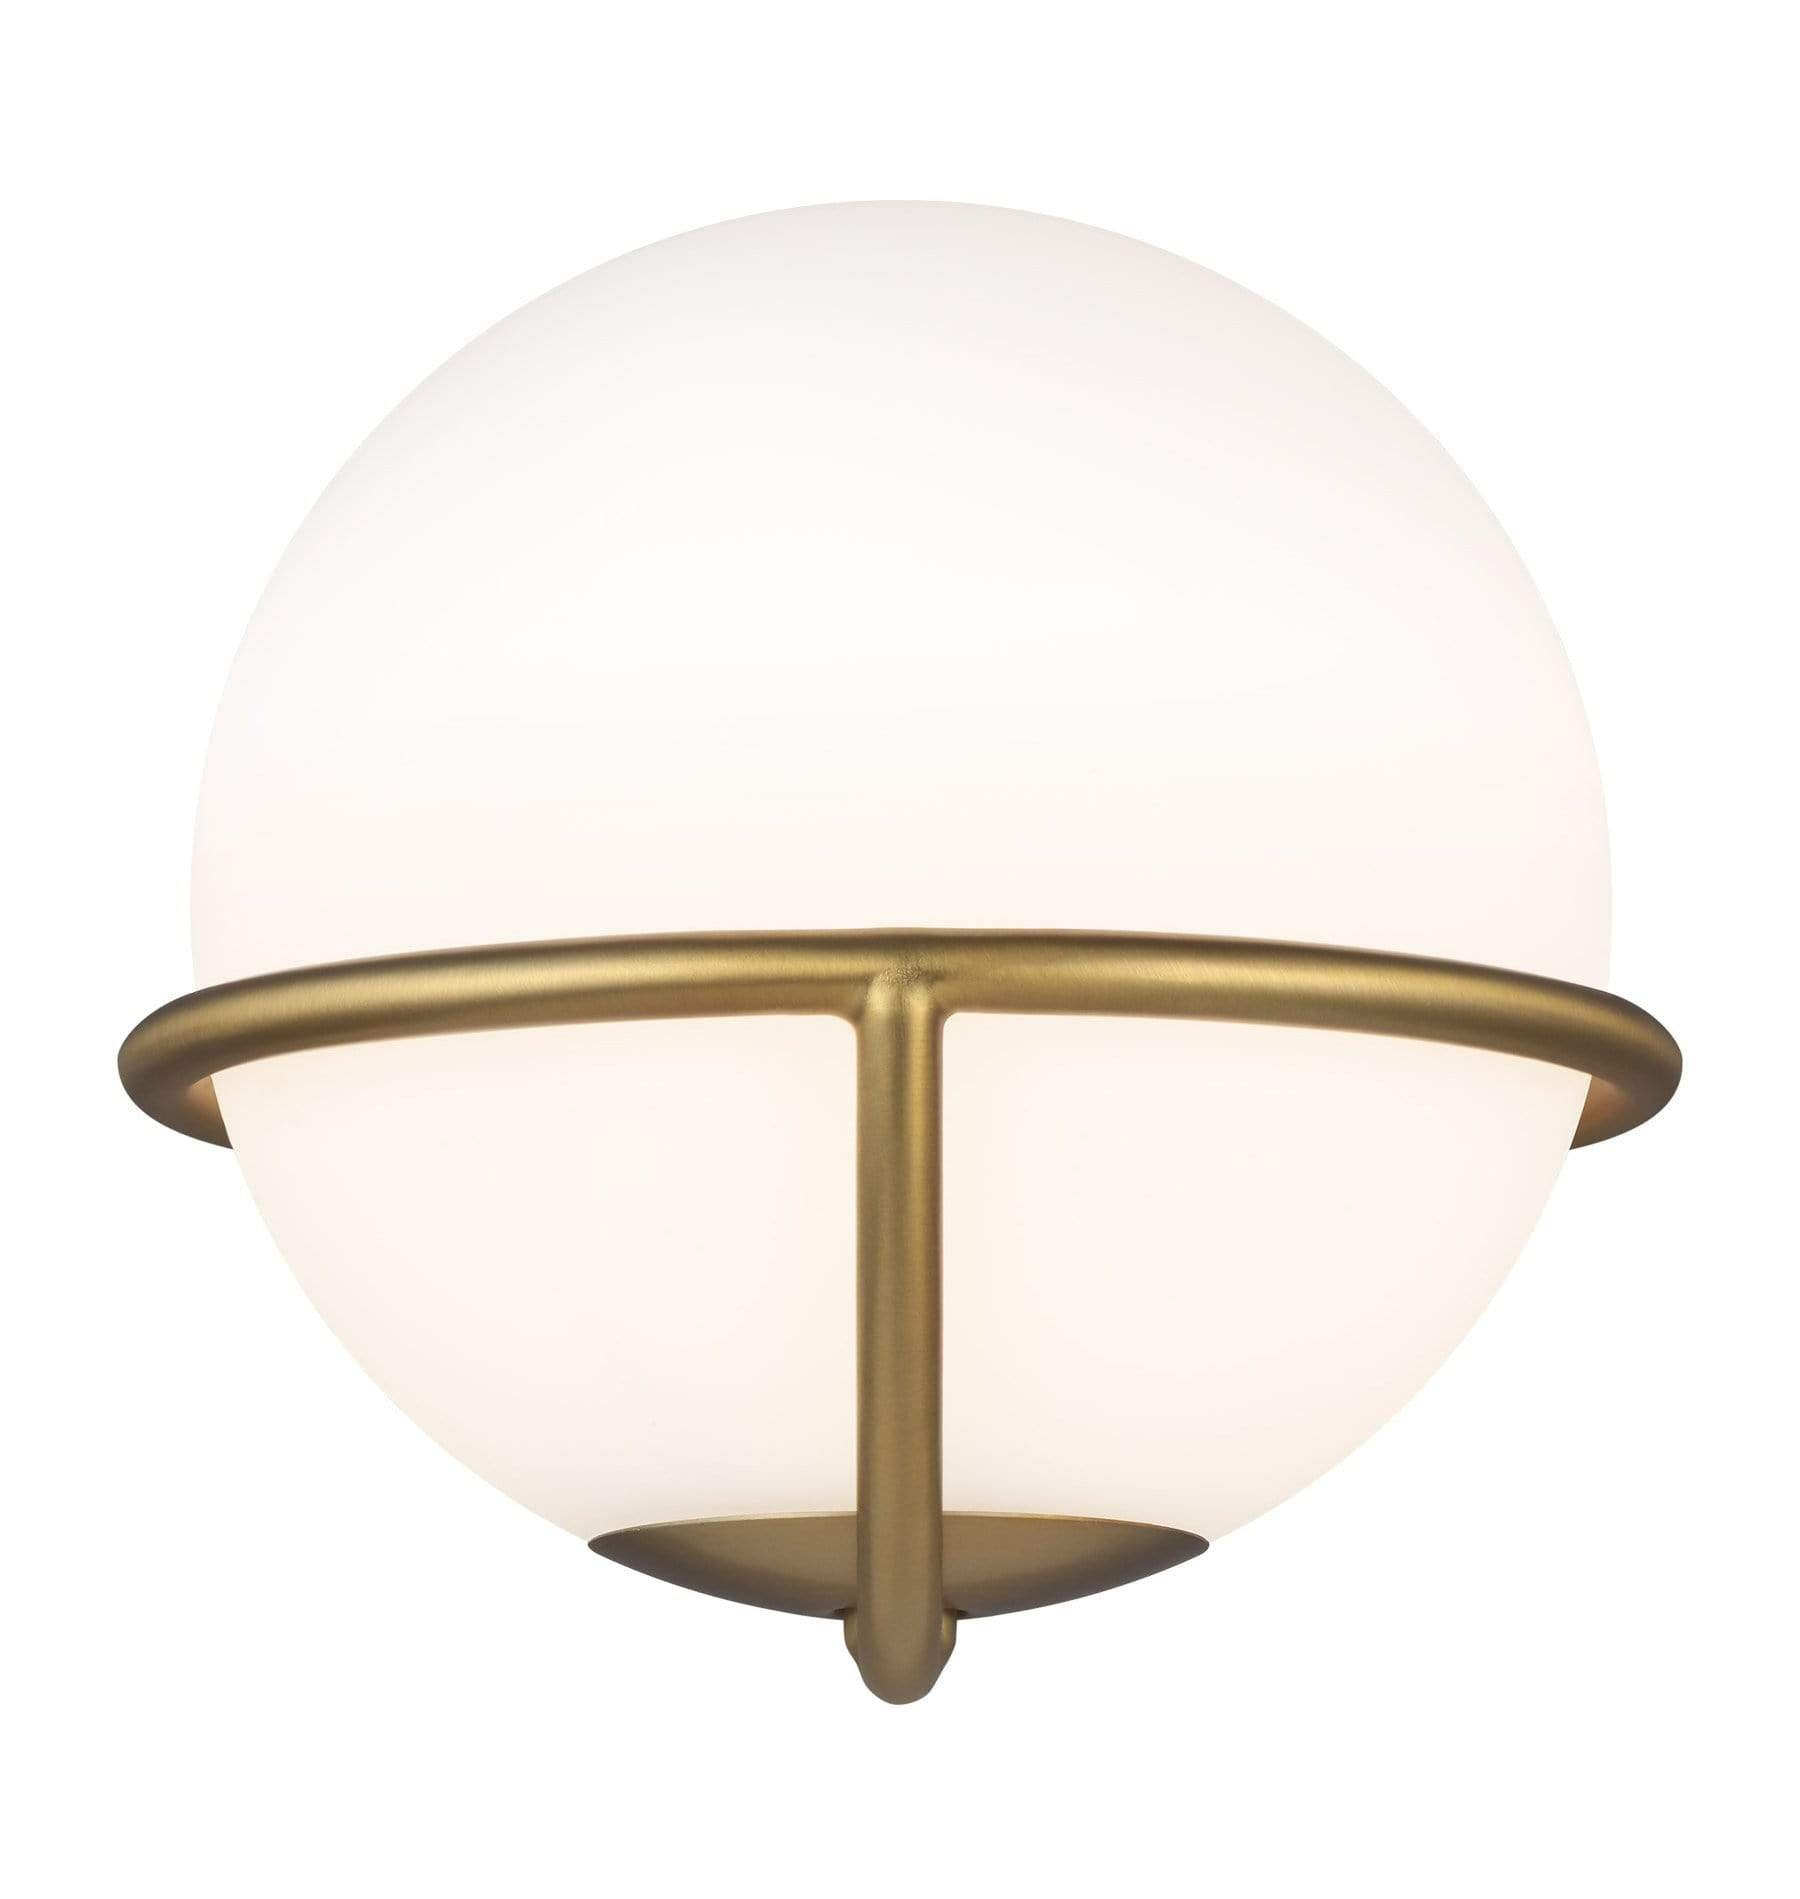 Vanity Apollo Wall Light